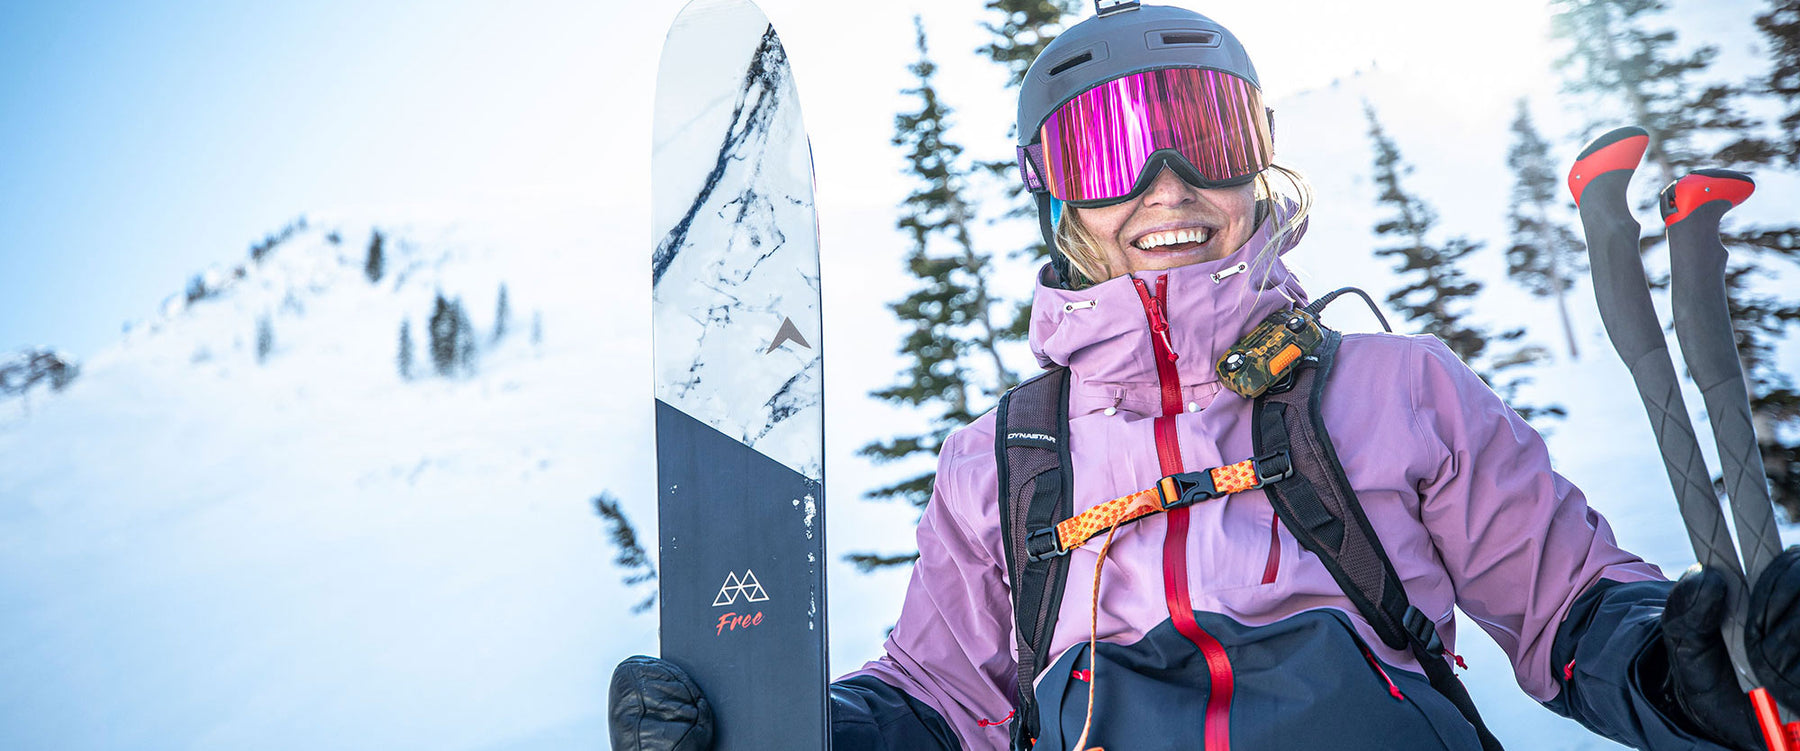 Dynastar skis may cause excessive smiling